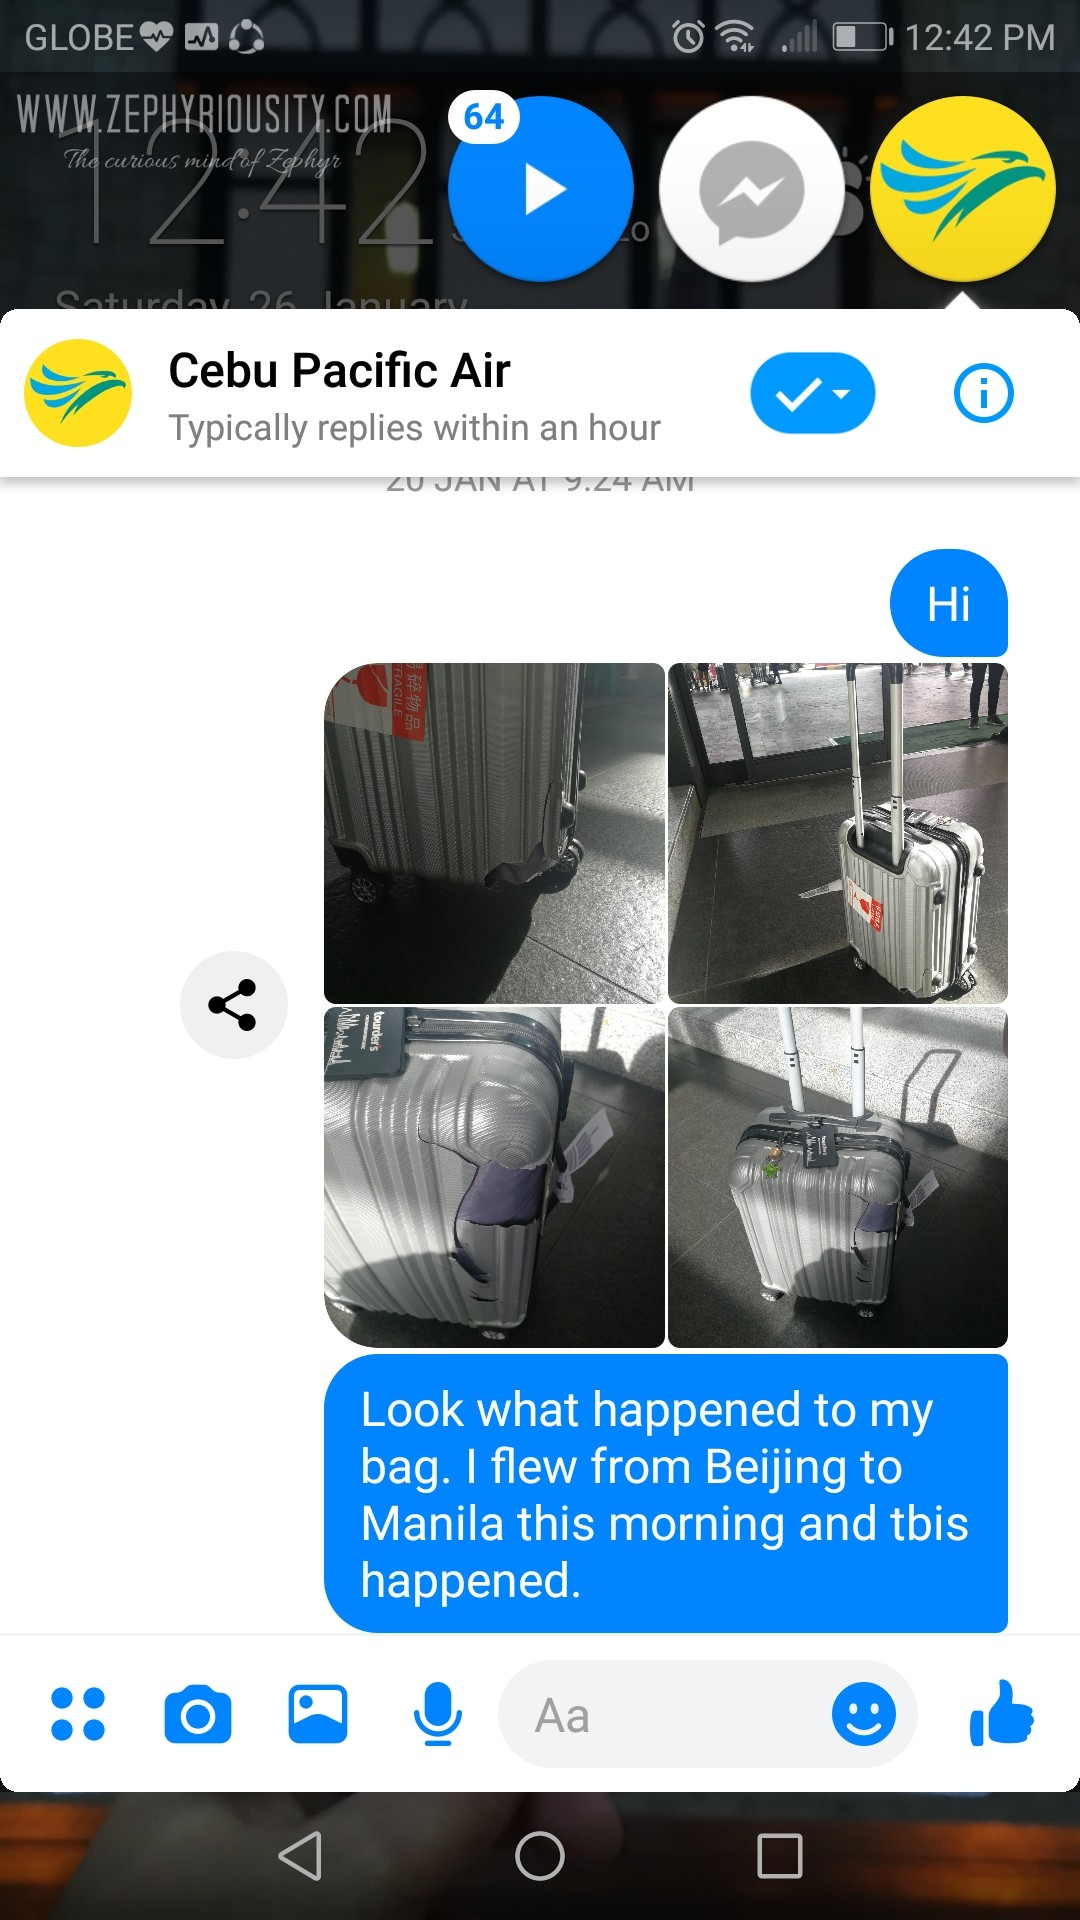 airline damaged baggage conversation cebu pacific